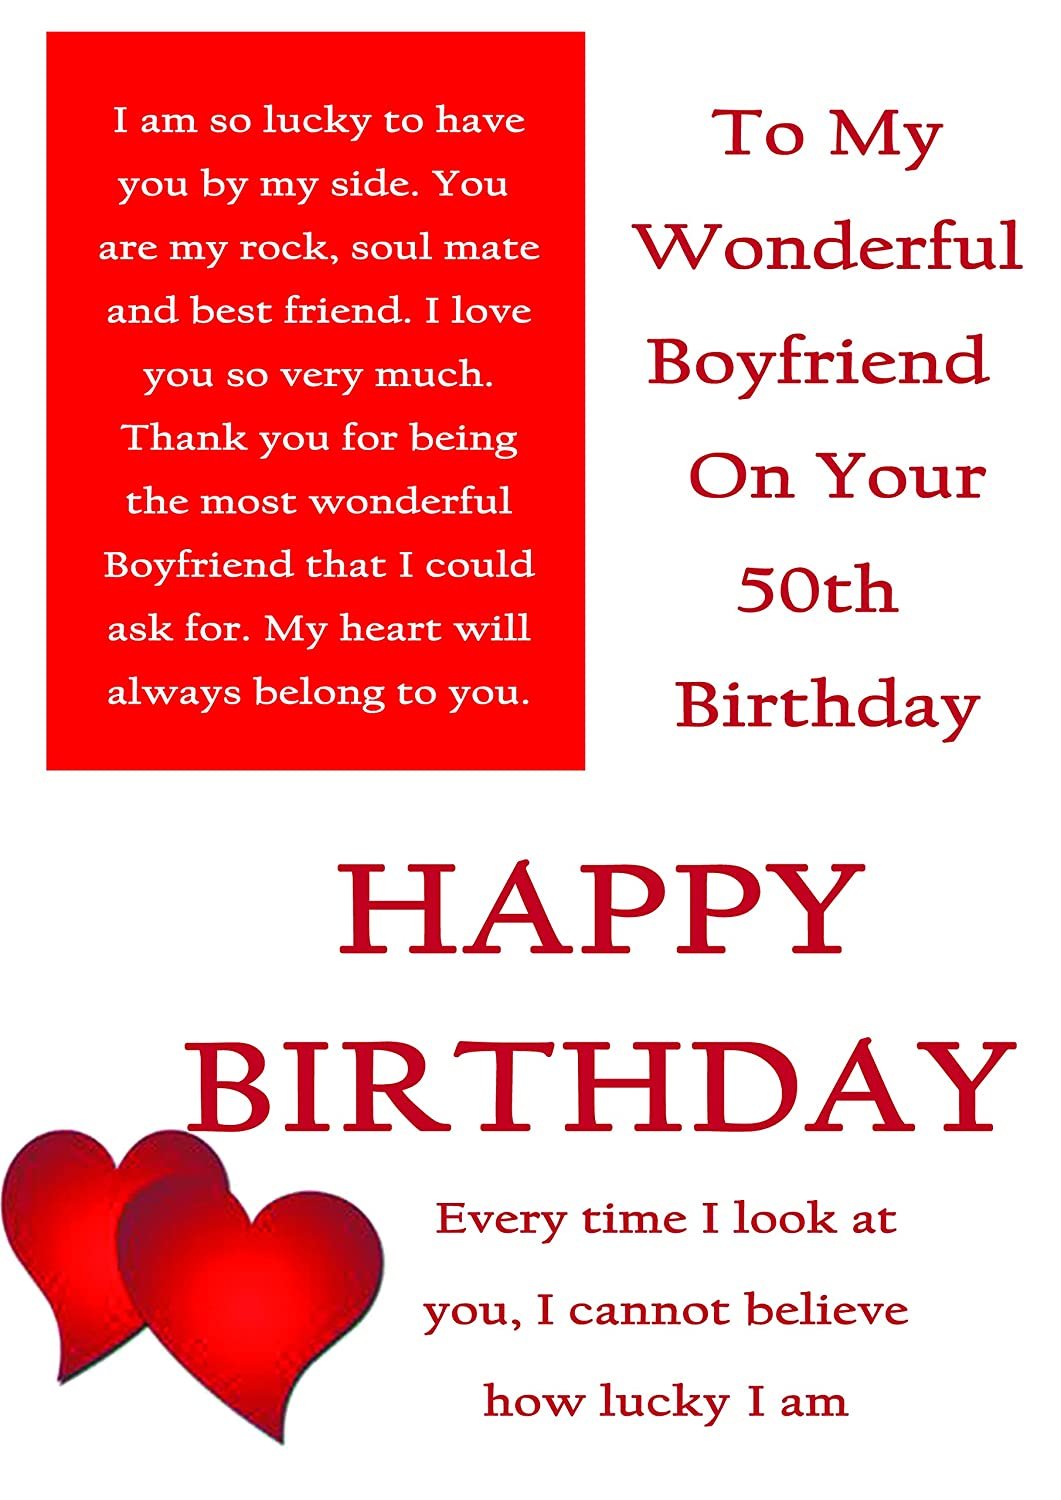 Boyfriend 50th Birthday Card With Removable Laminate